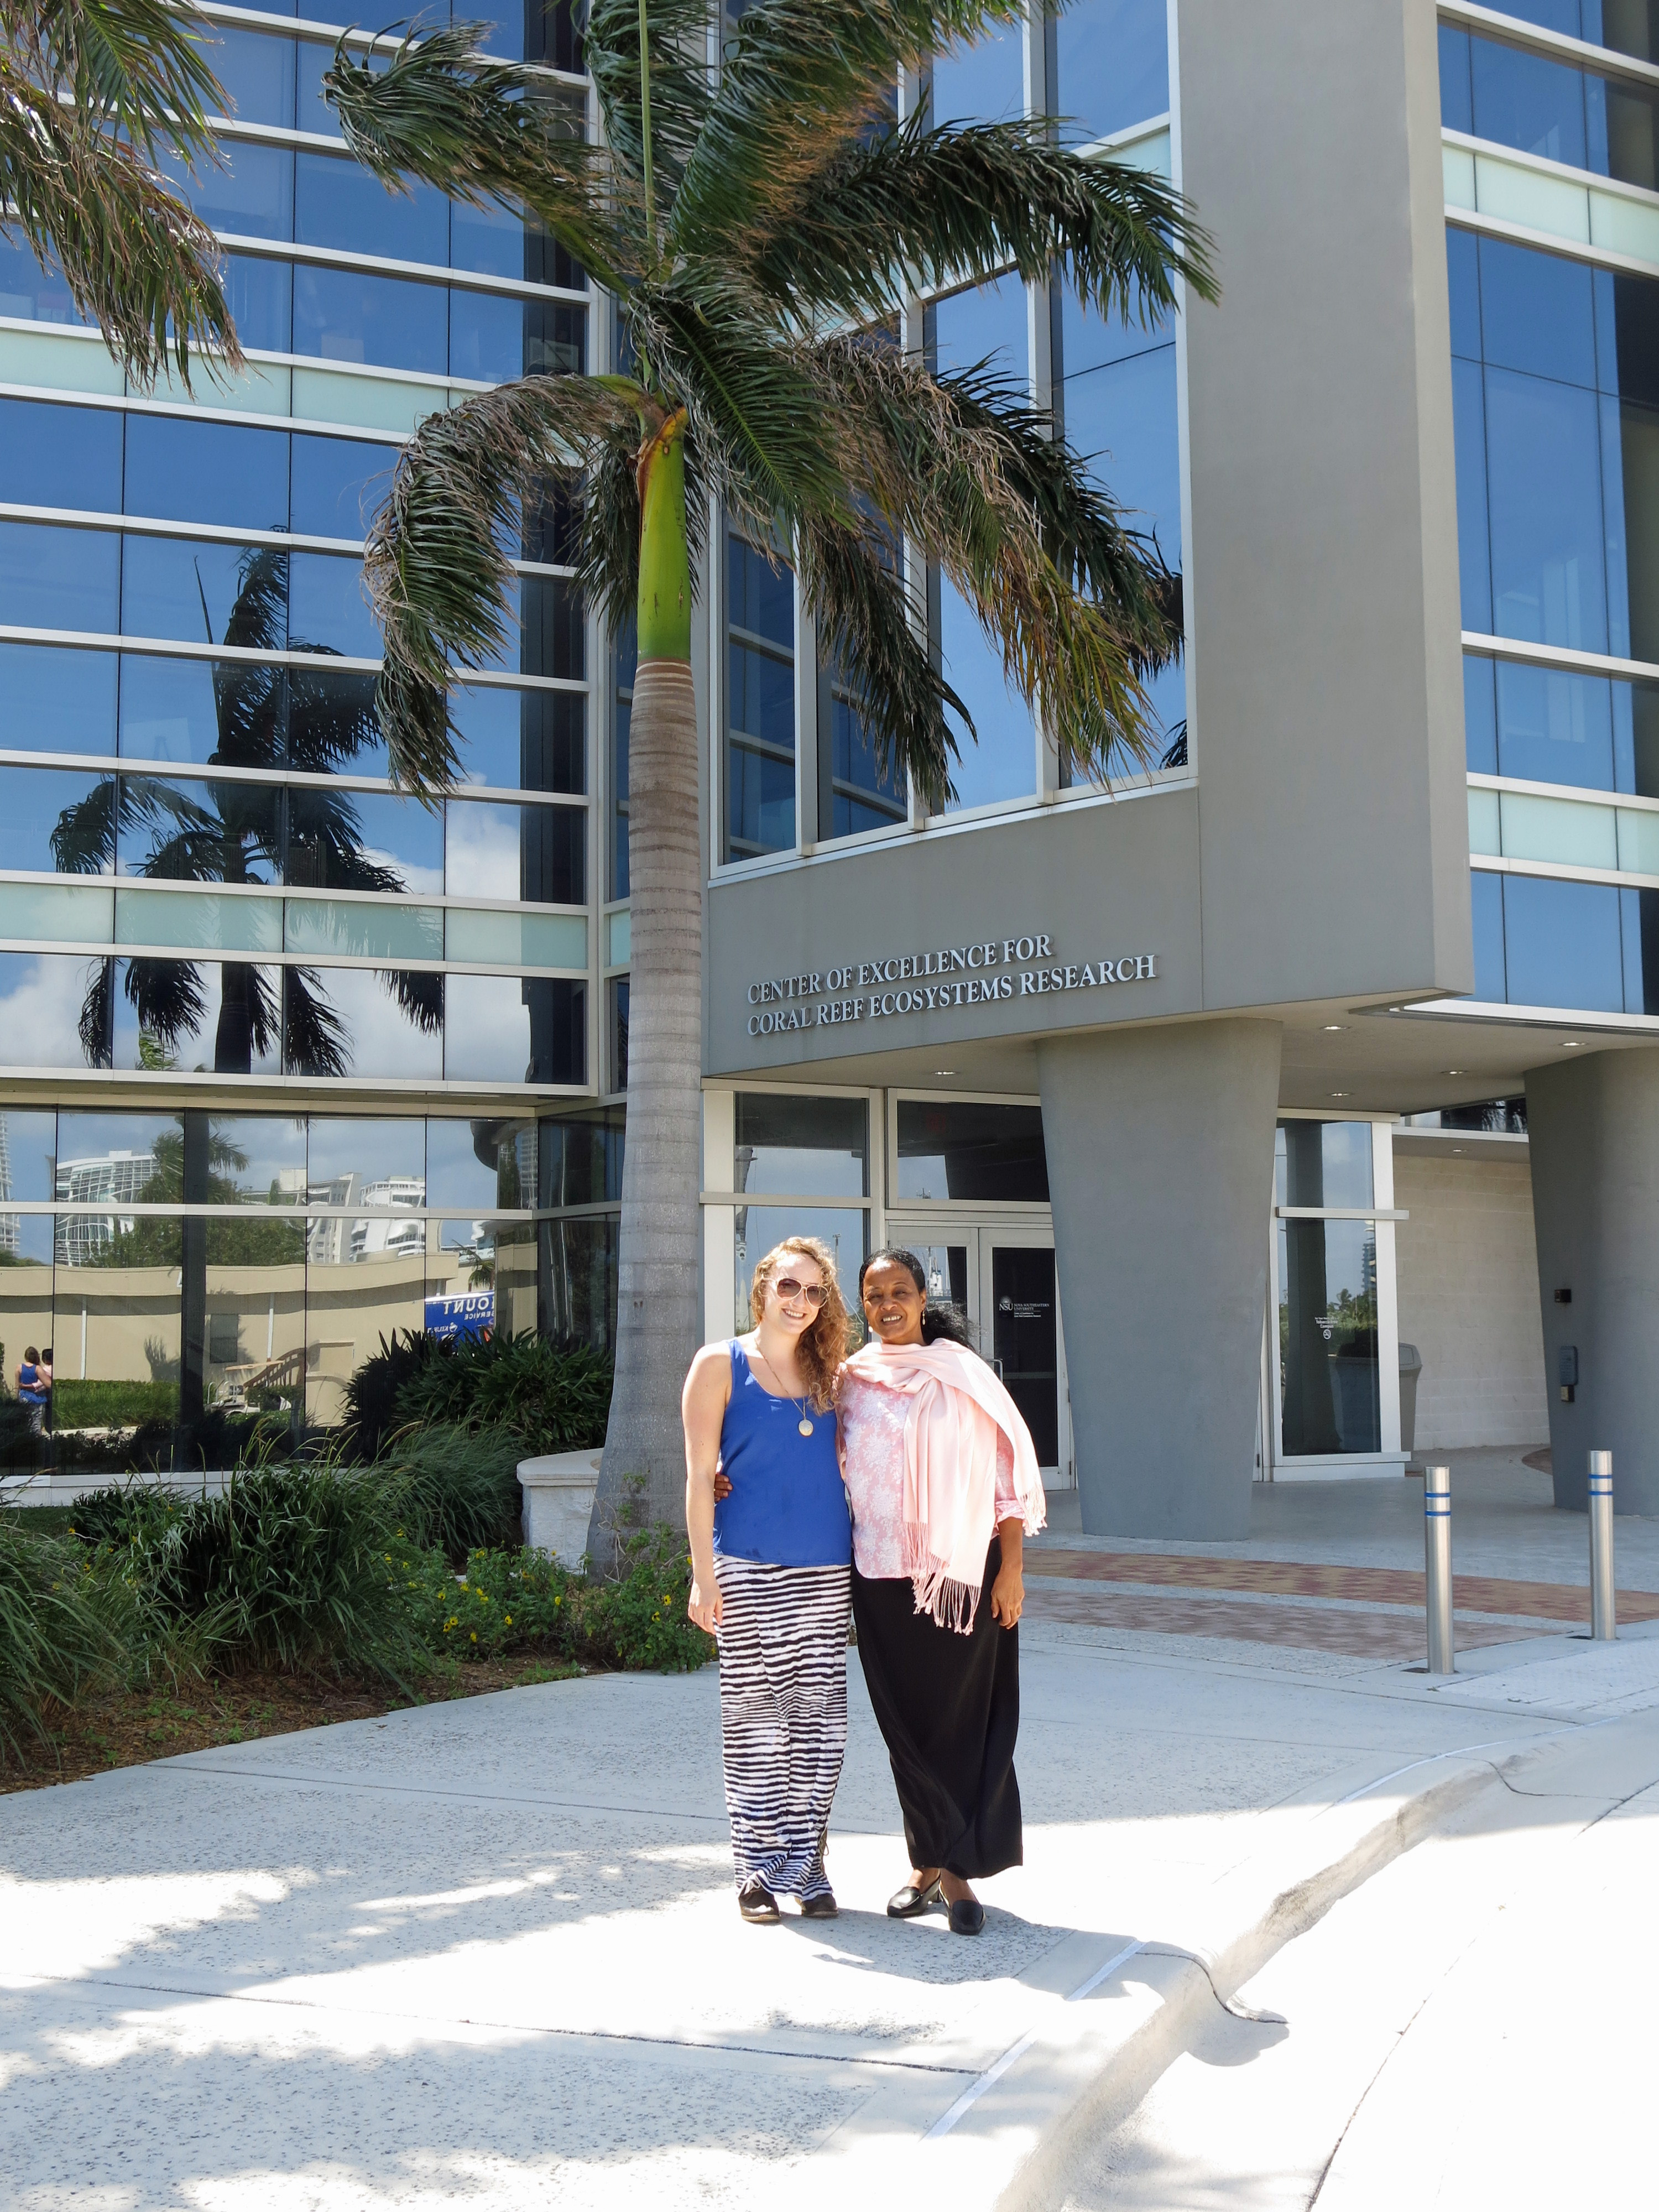 Igbal and Cassandra outside the SOSSRC laboratory building